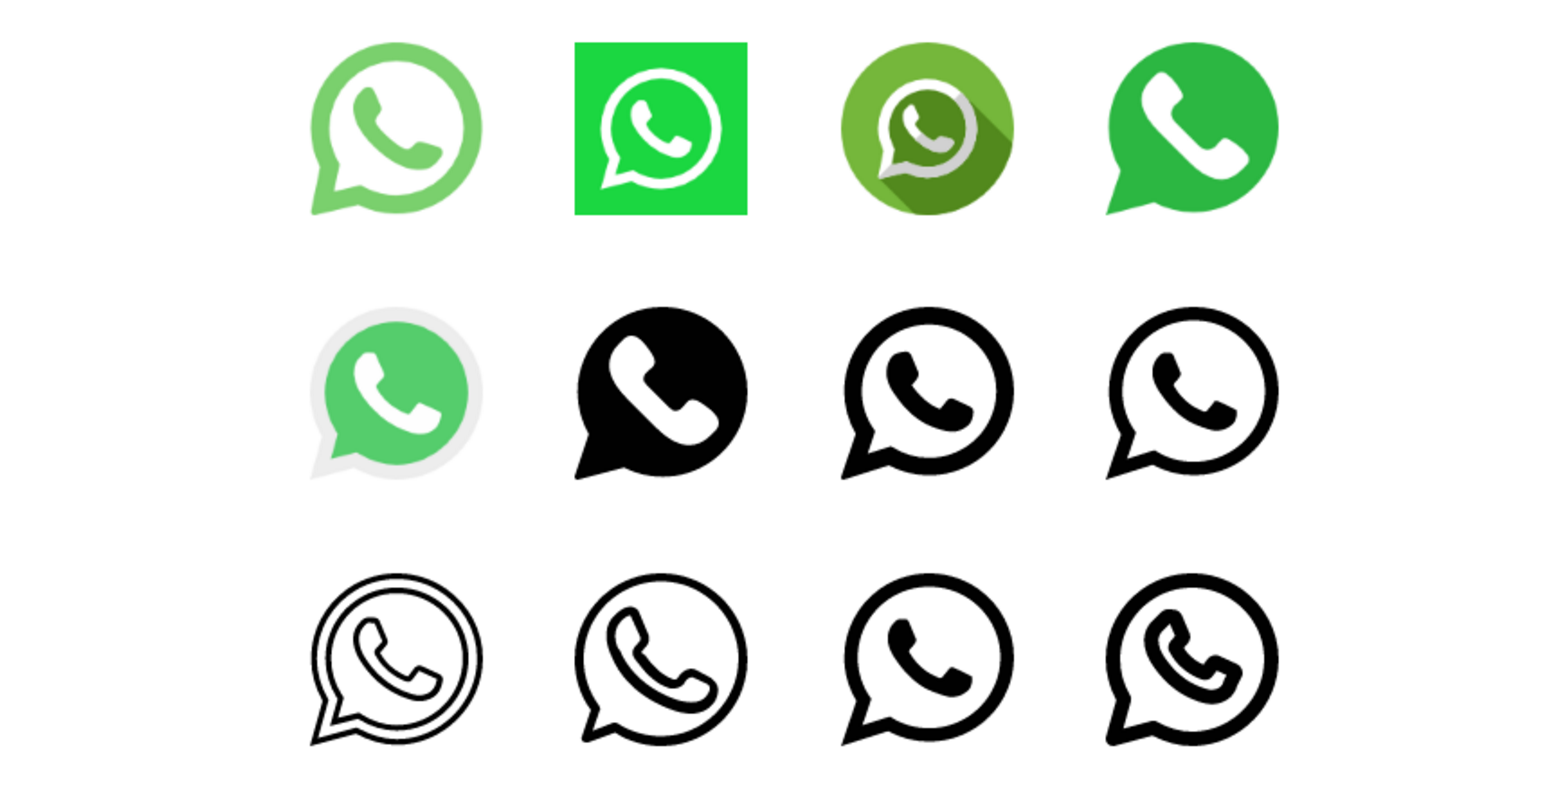 Emoji Whatsapp Computer Iphone Icons Download Free Image PNG Image